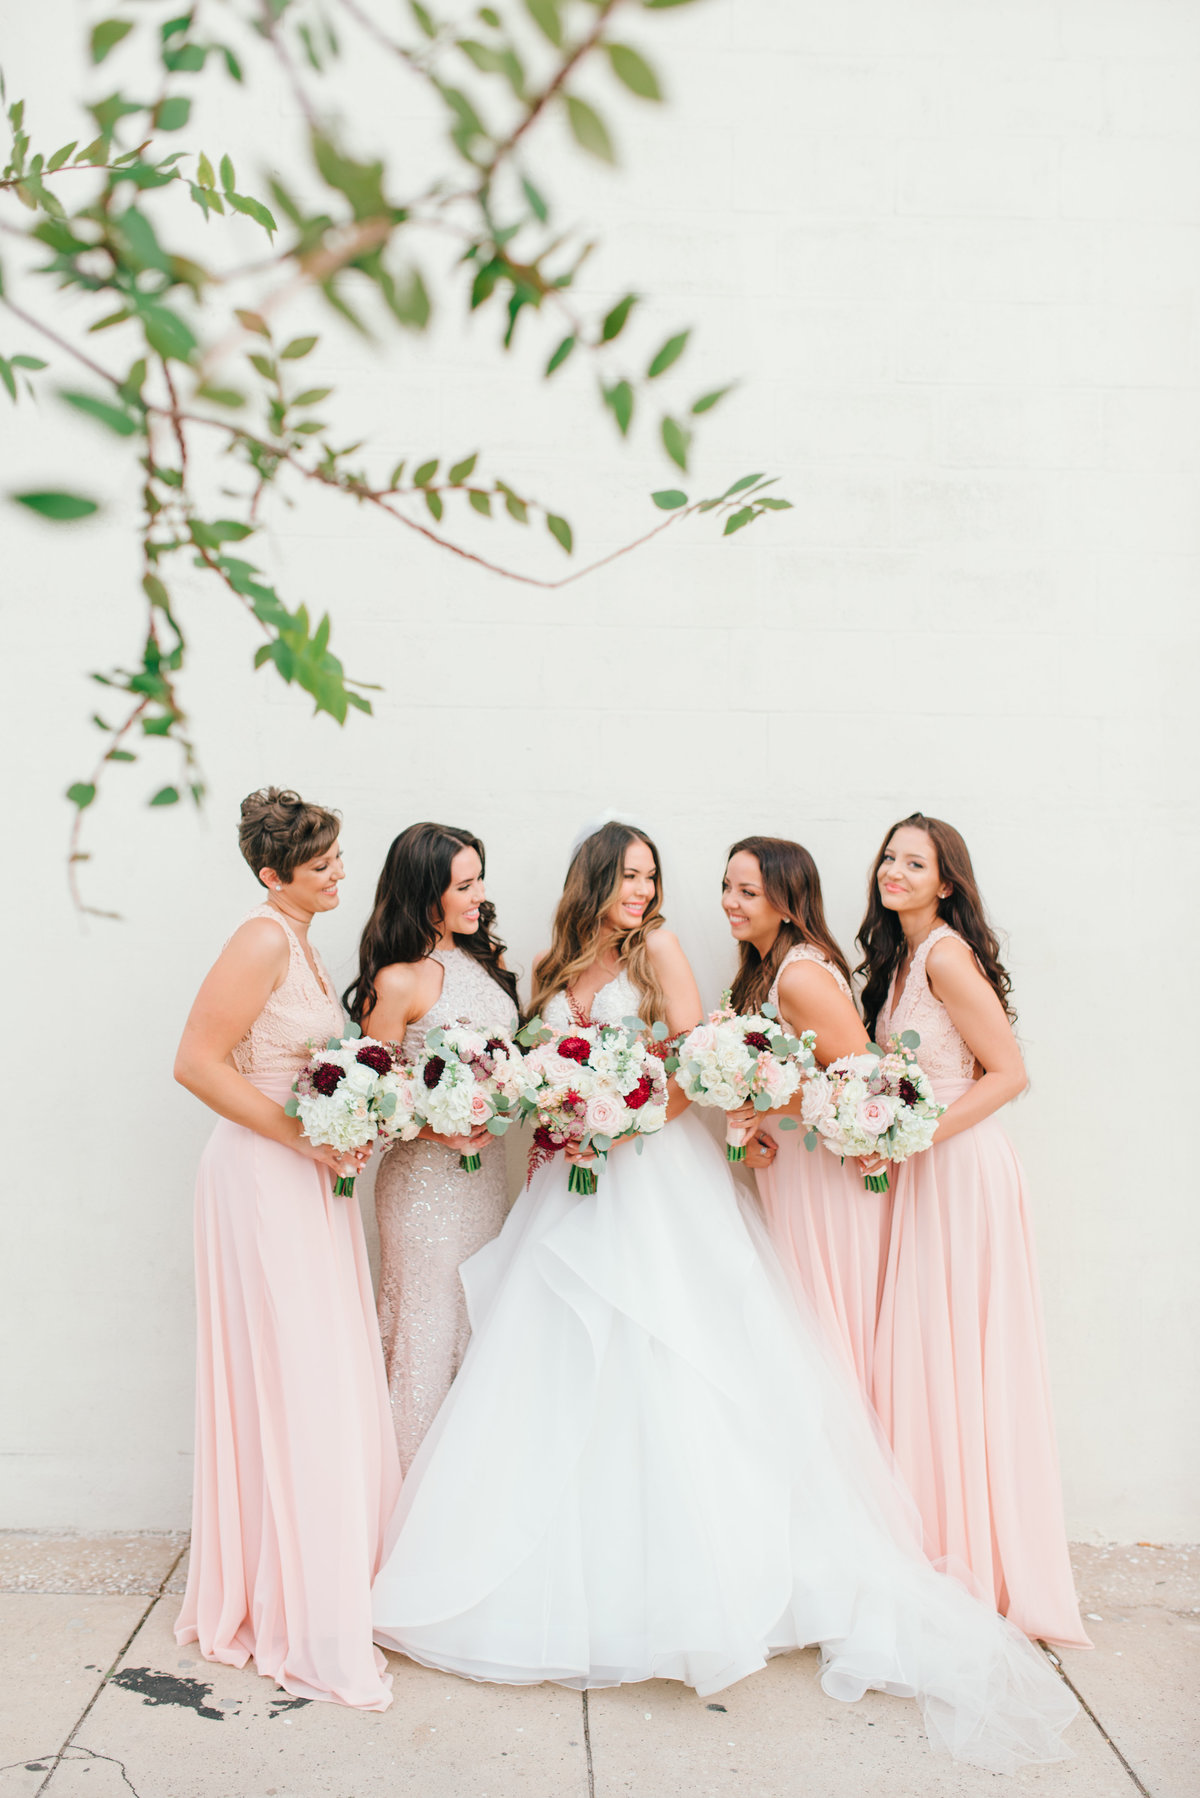 Bride and bridesmaids together smiling